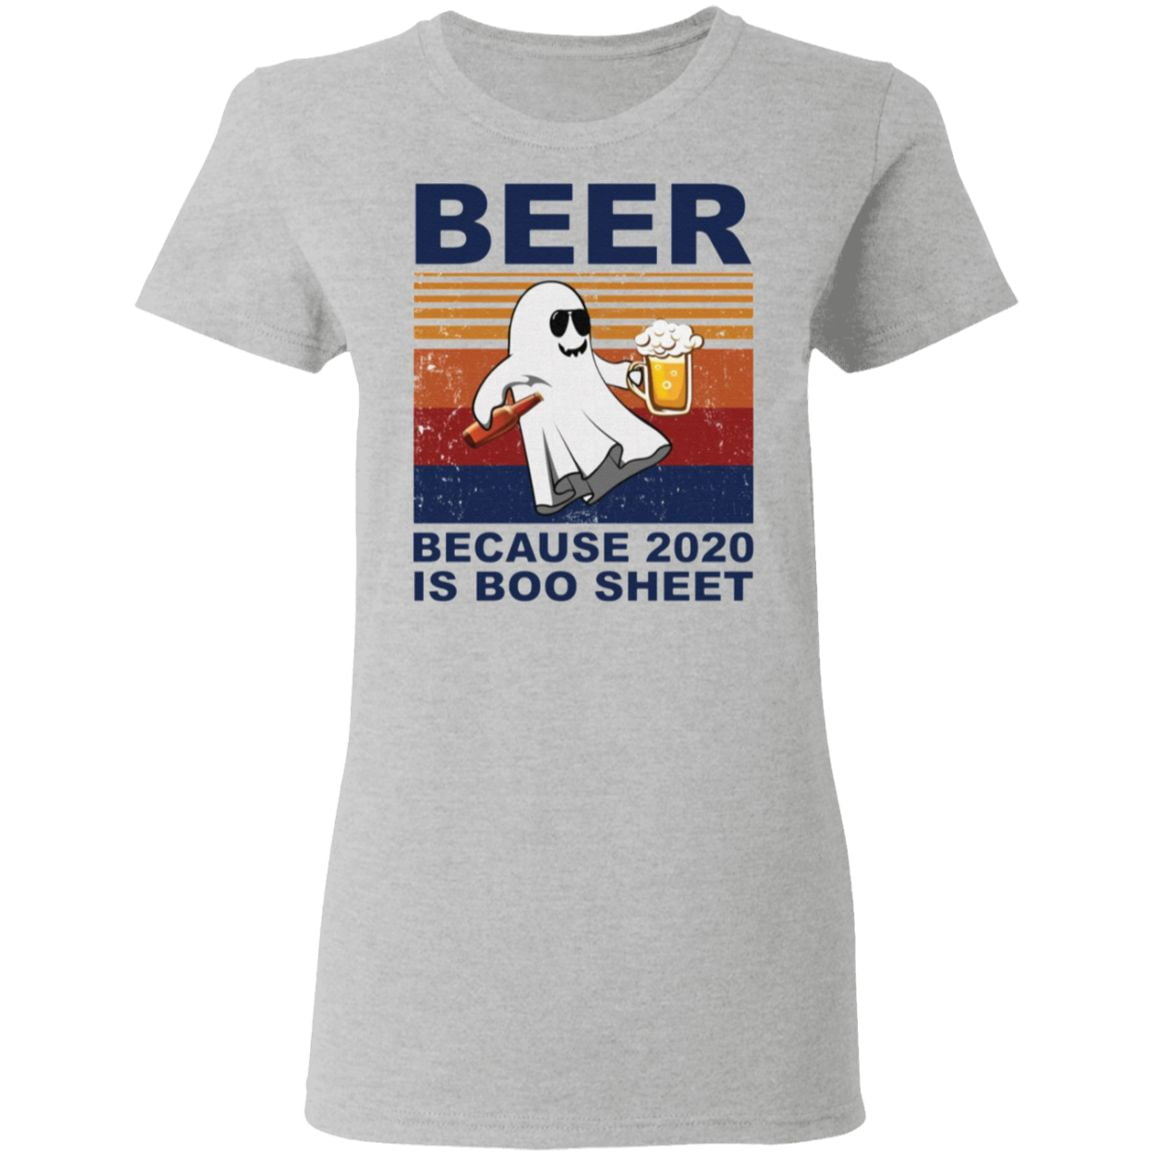 Beer because 2020 is boo sheet t shirt